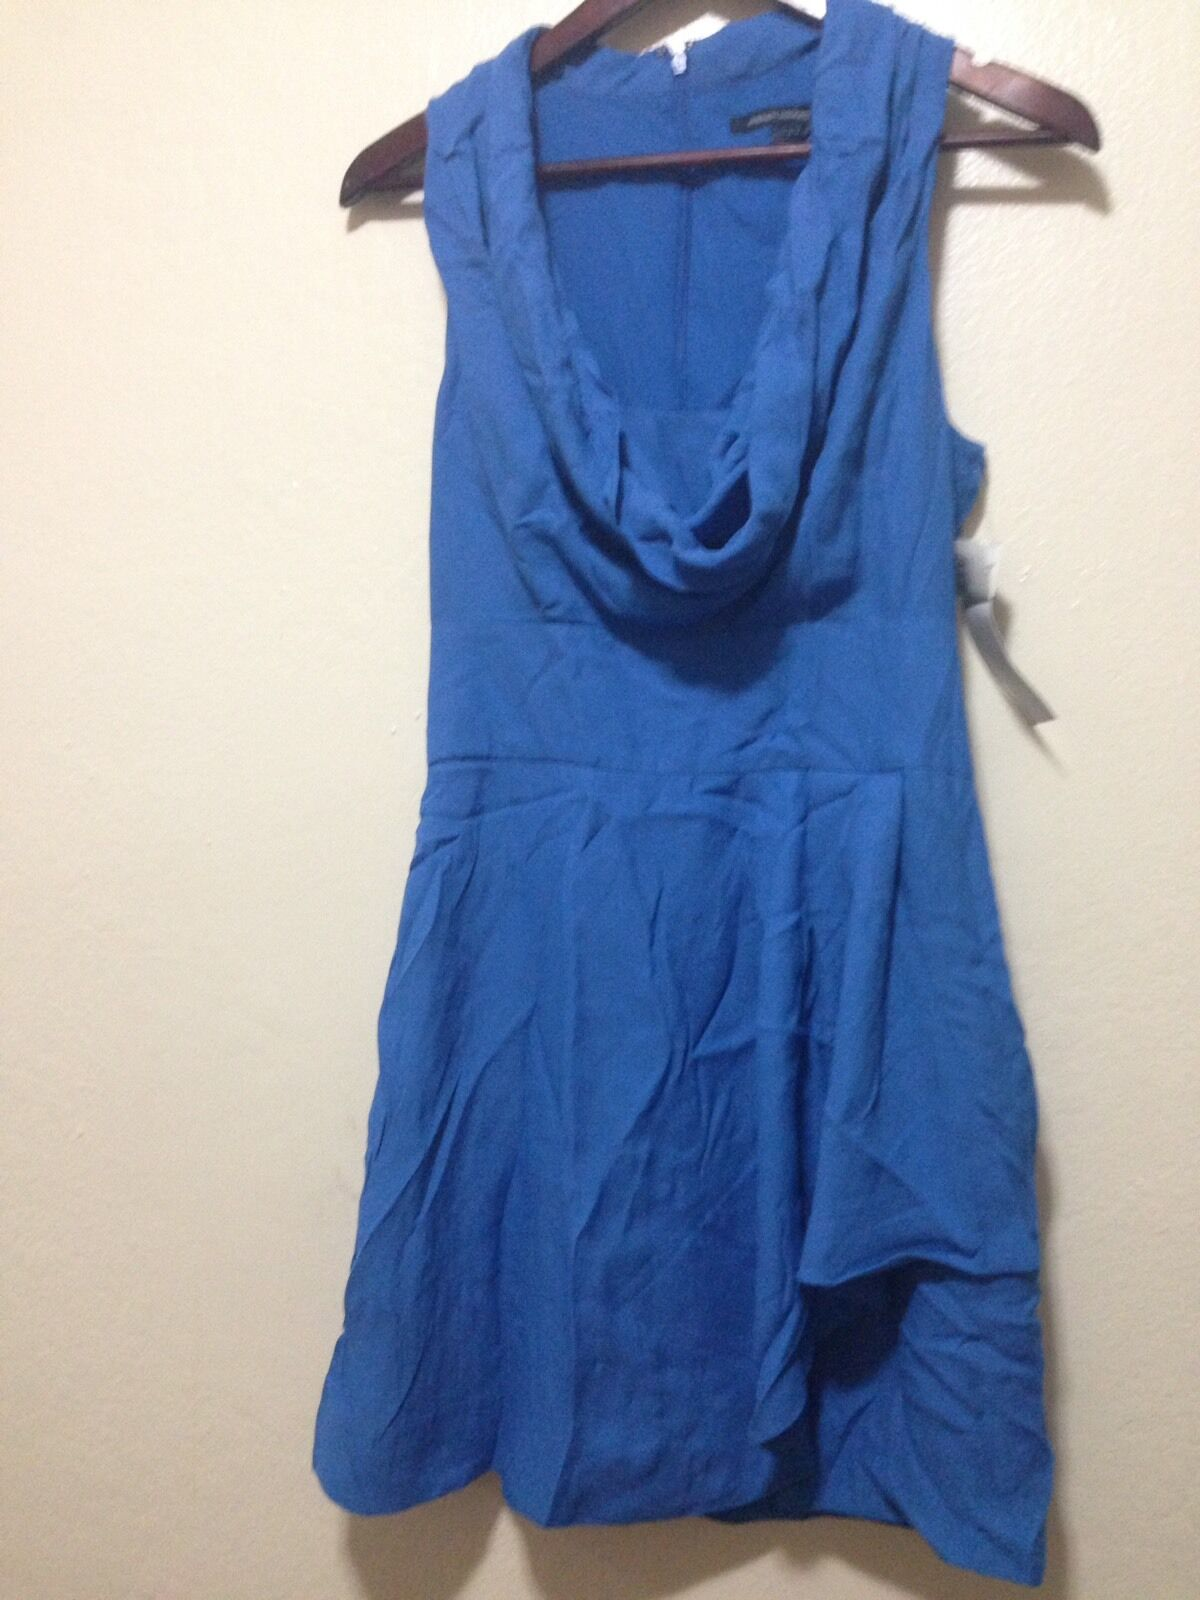 NWT FRENCH CONNECTION Dress Size 6